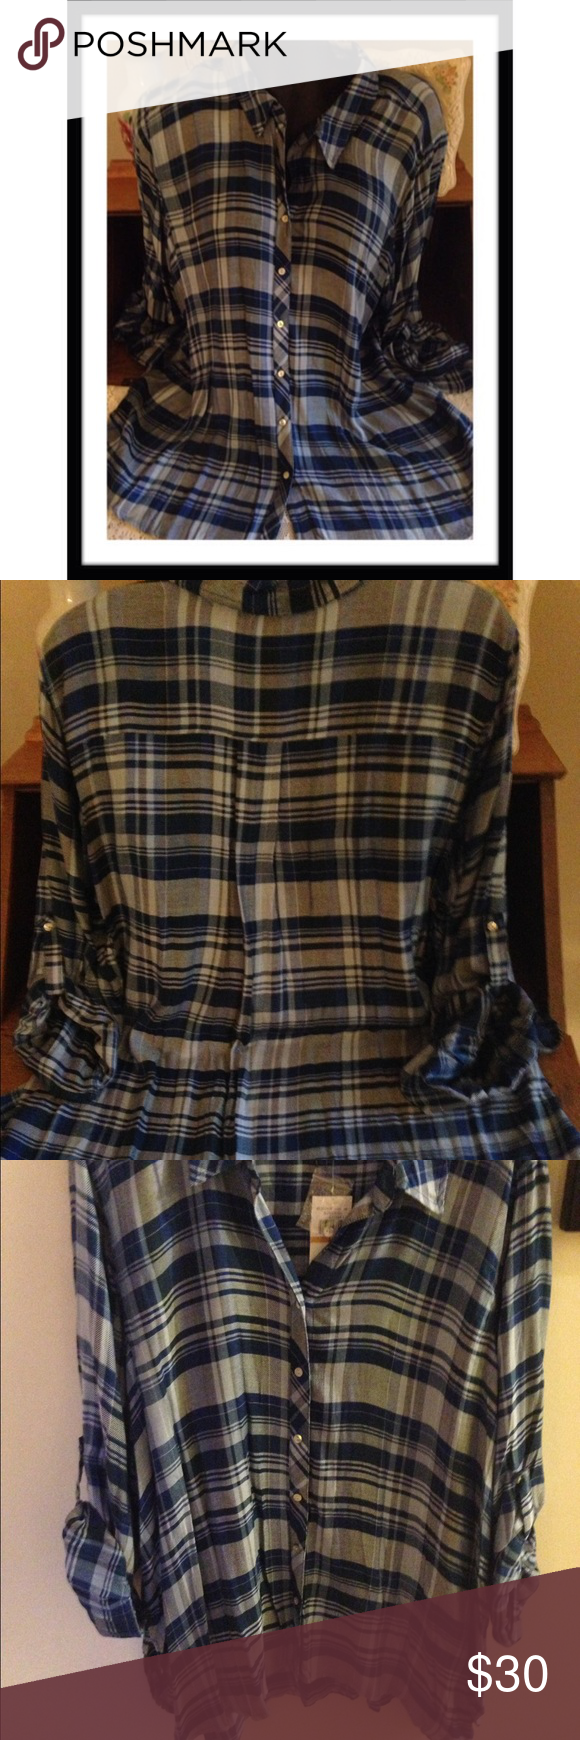 6fa19cc2bb9 GLAD IT S PLAID Cupio brand 100% rayon blouse with placket sleeves that  roll down